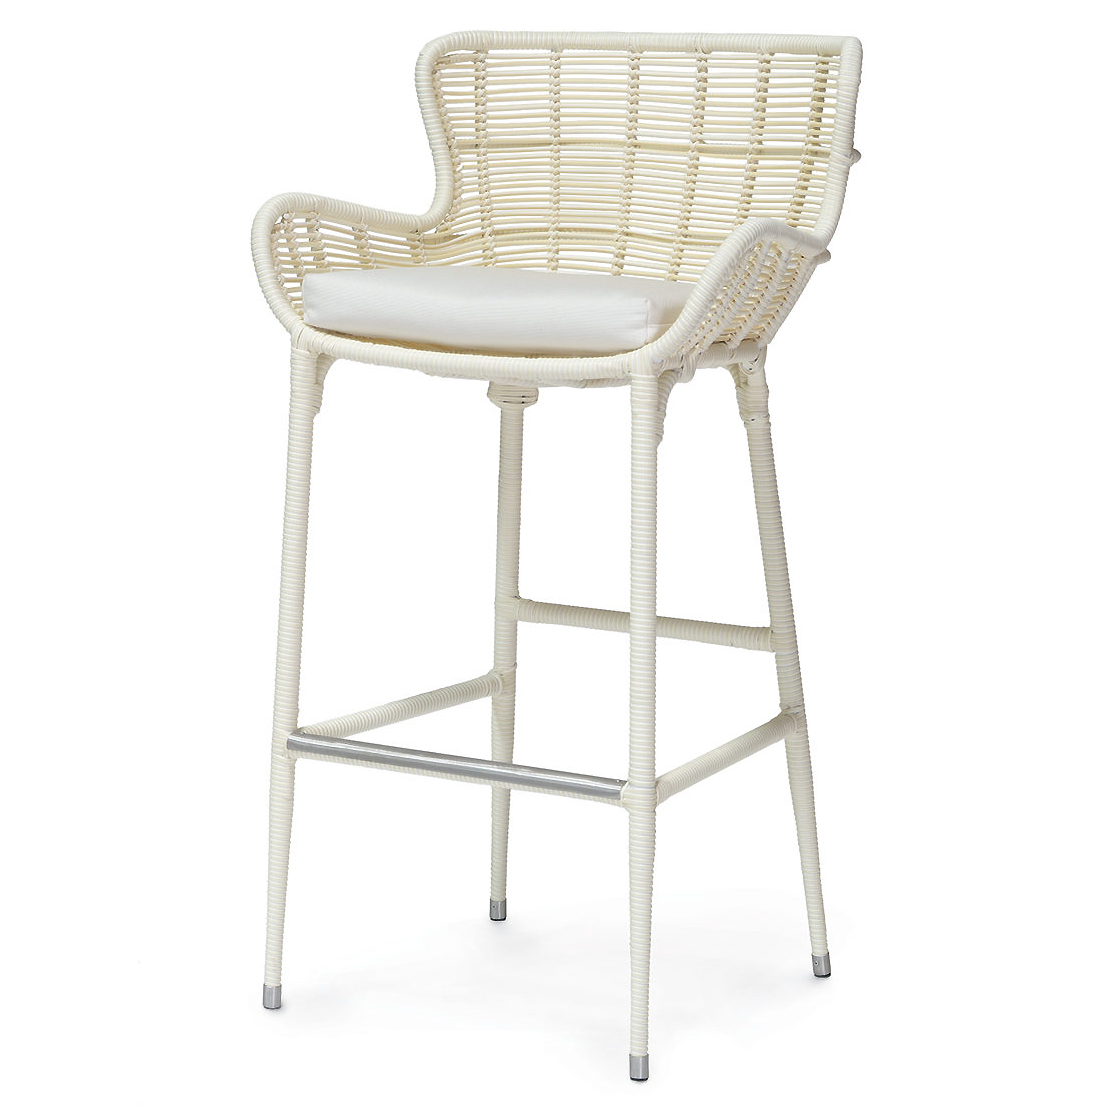 Lacey Modern Classic Cream Outdoor Barstool